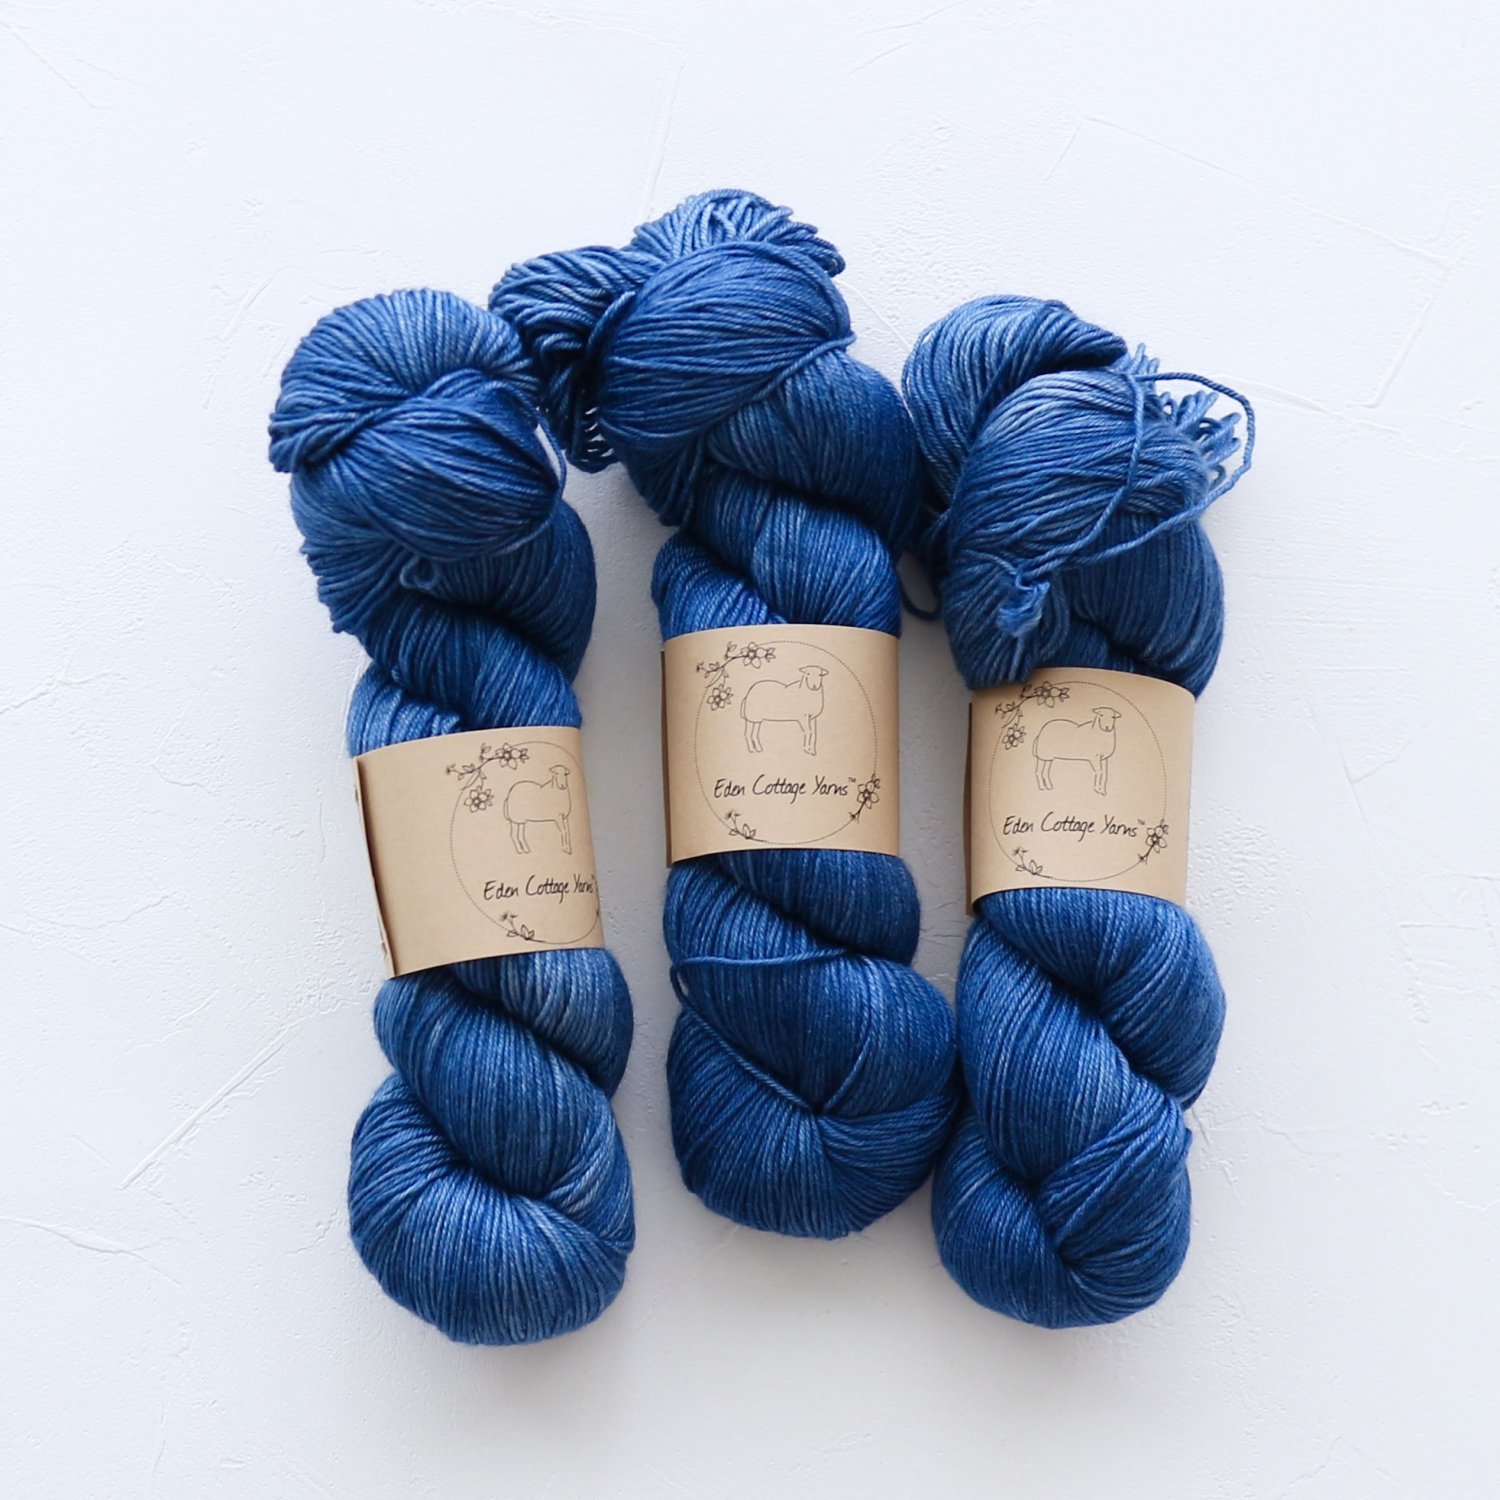 【Eden Cottage Yarns】<br>Titus 4ply<br>Midnight